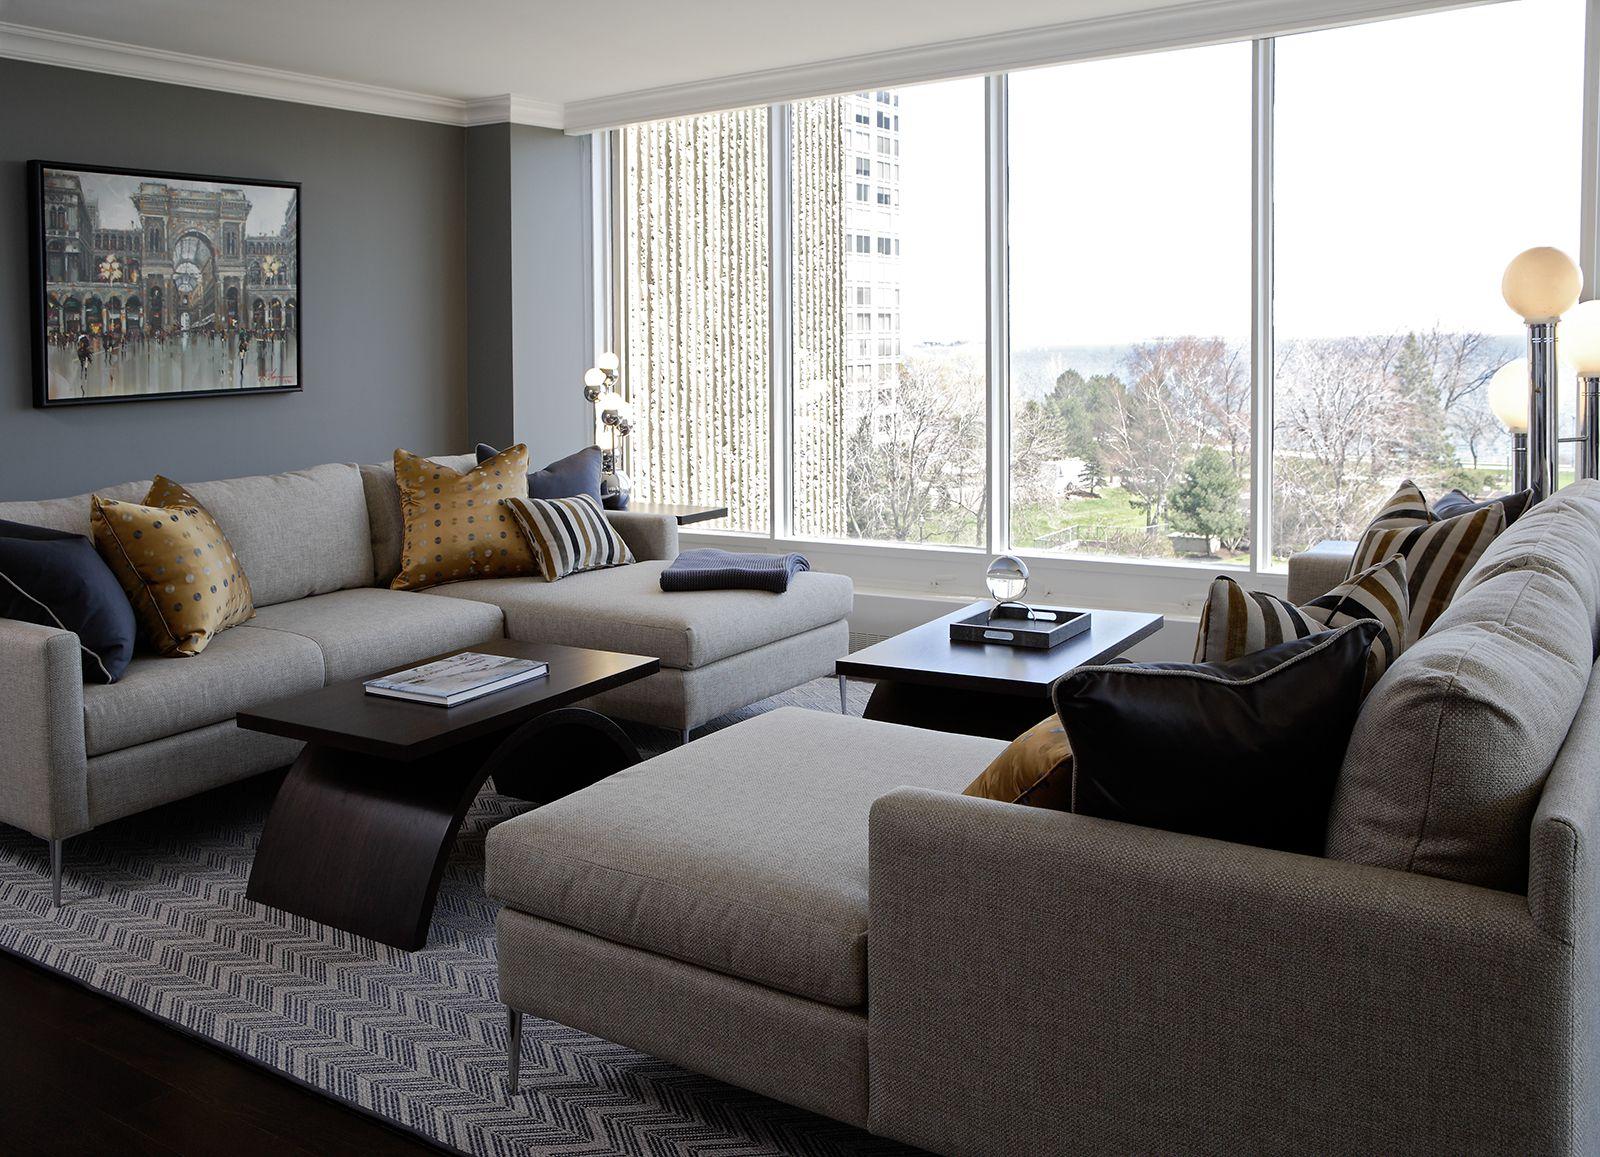 40 Sectional Sofas For Every Style Of Living Room Decor - Living Room  Sectionals